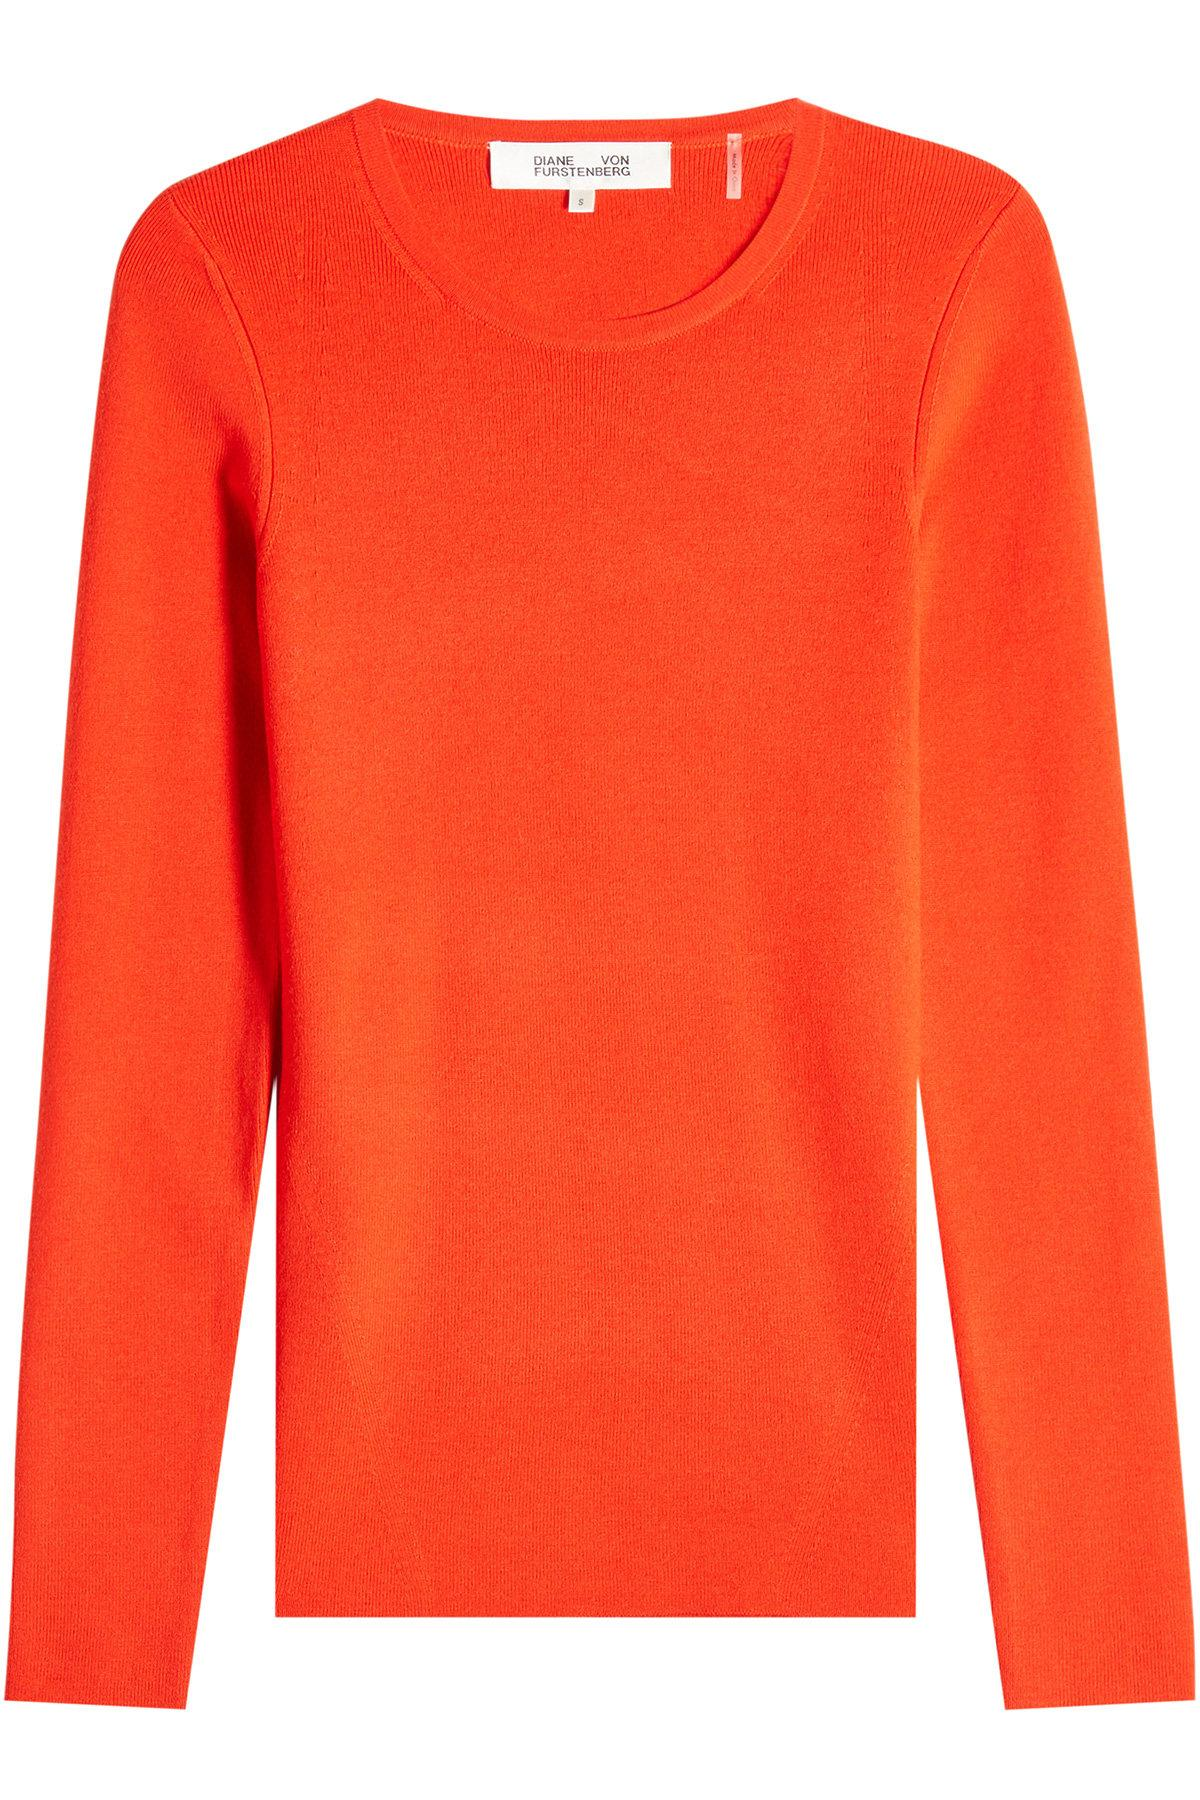 Diane Von Furstenberg Merino Wool Top In Red